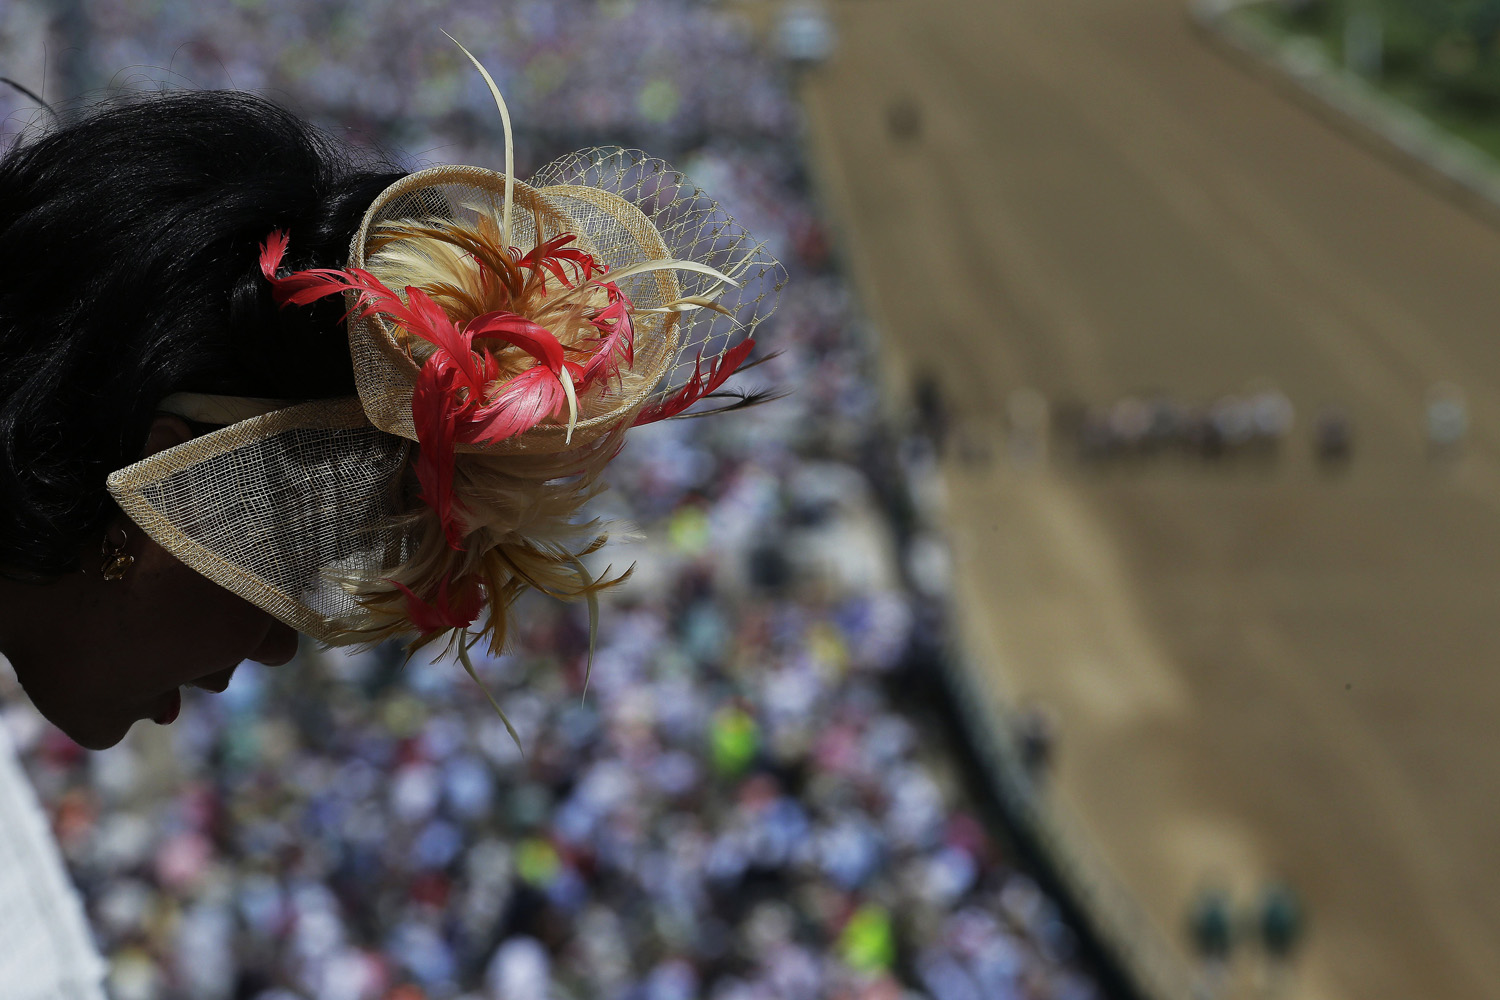 May 3, 2014. A woman looks out over a balcony before the 140th running of the Kentucky Derby horse race at Churchill Downs in Louisville, Ky.